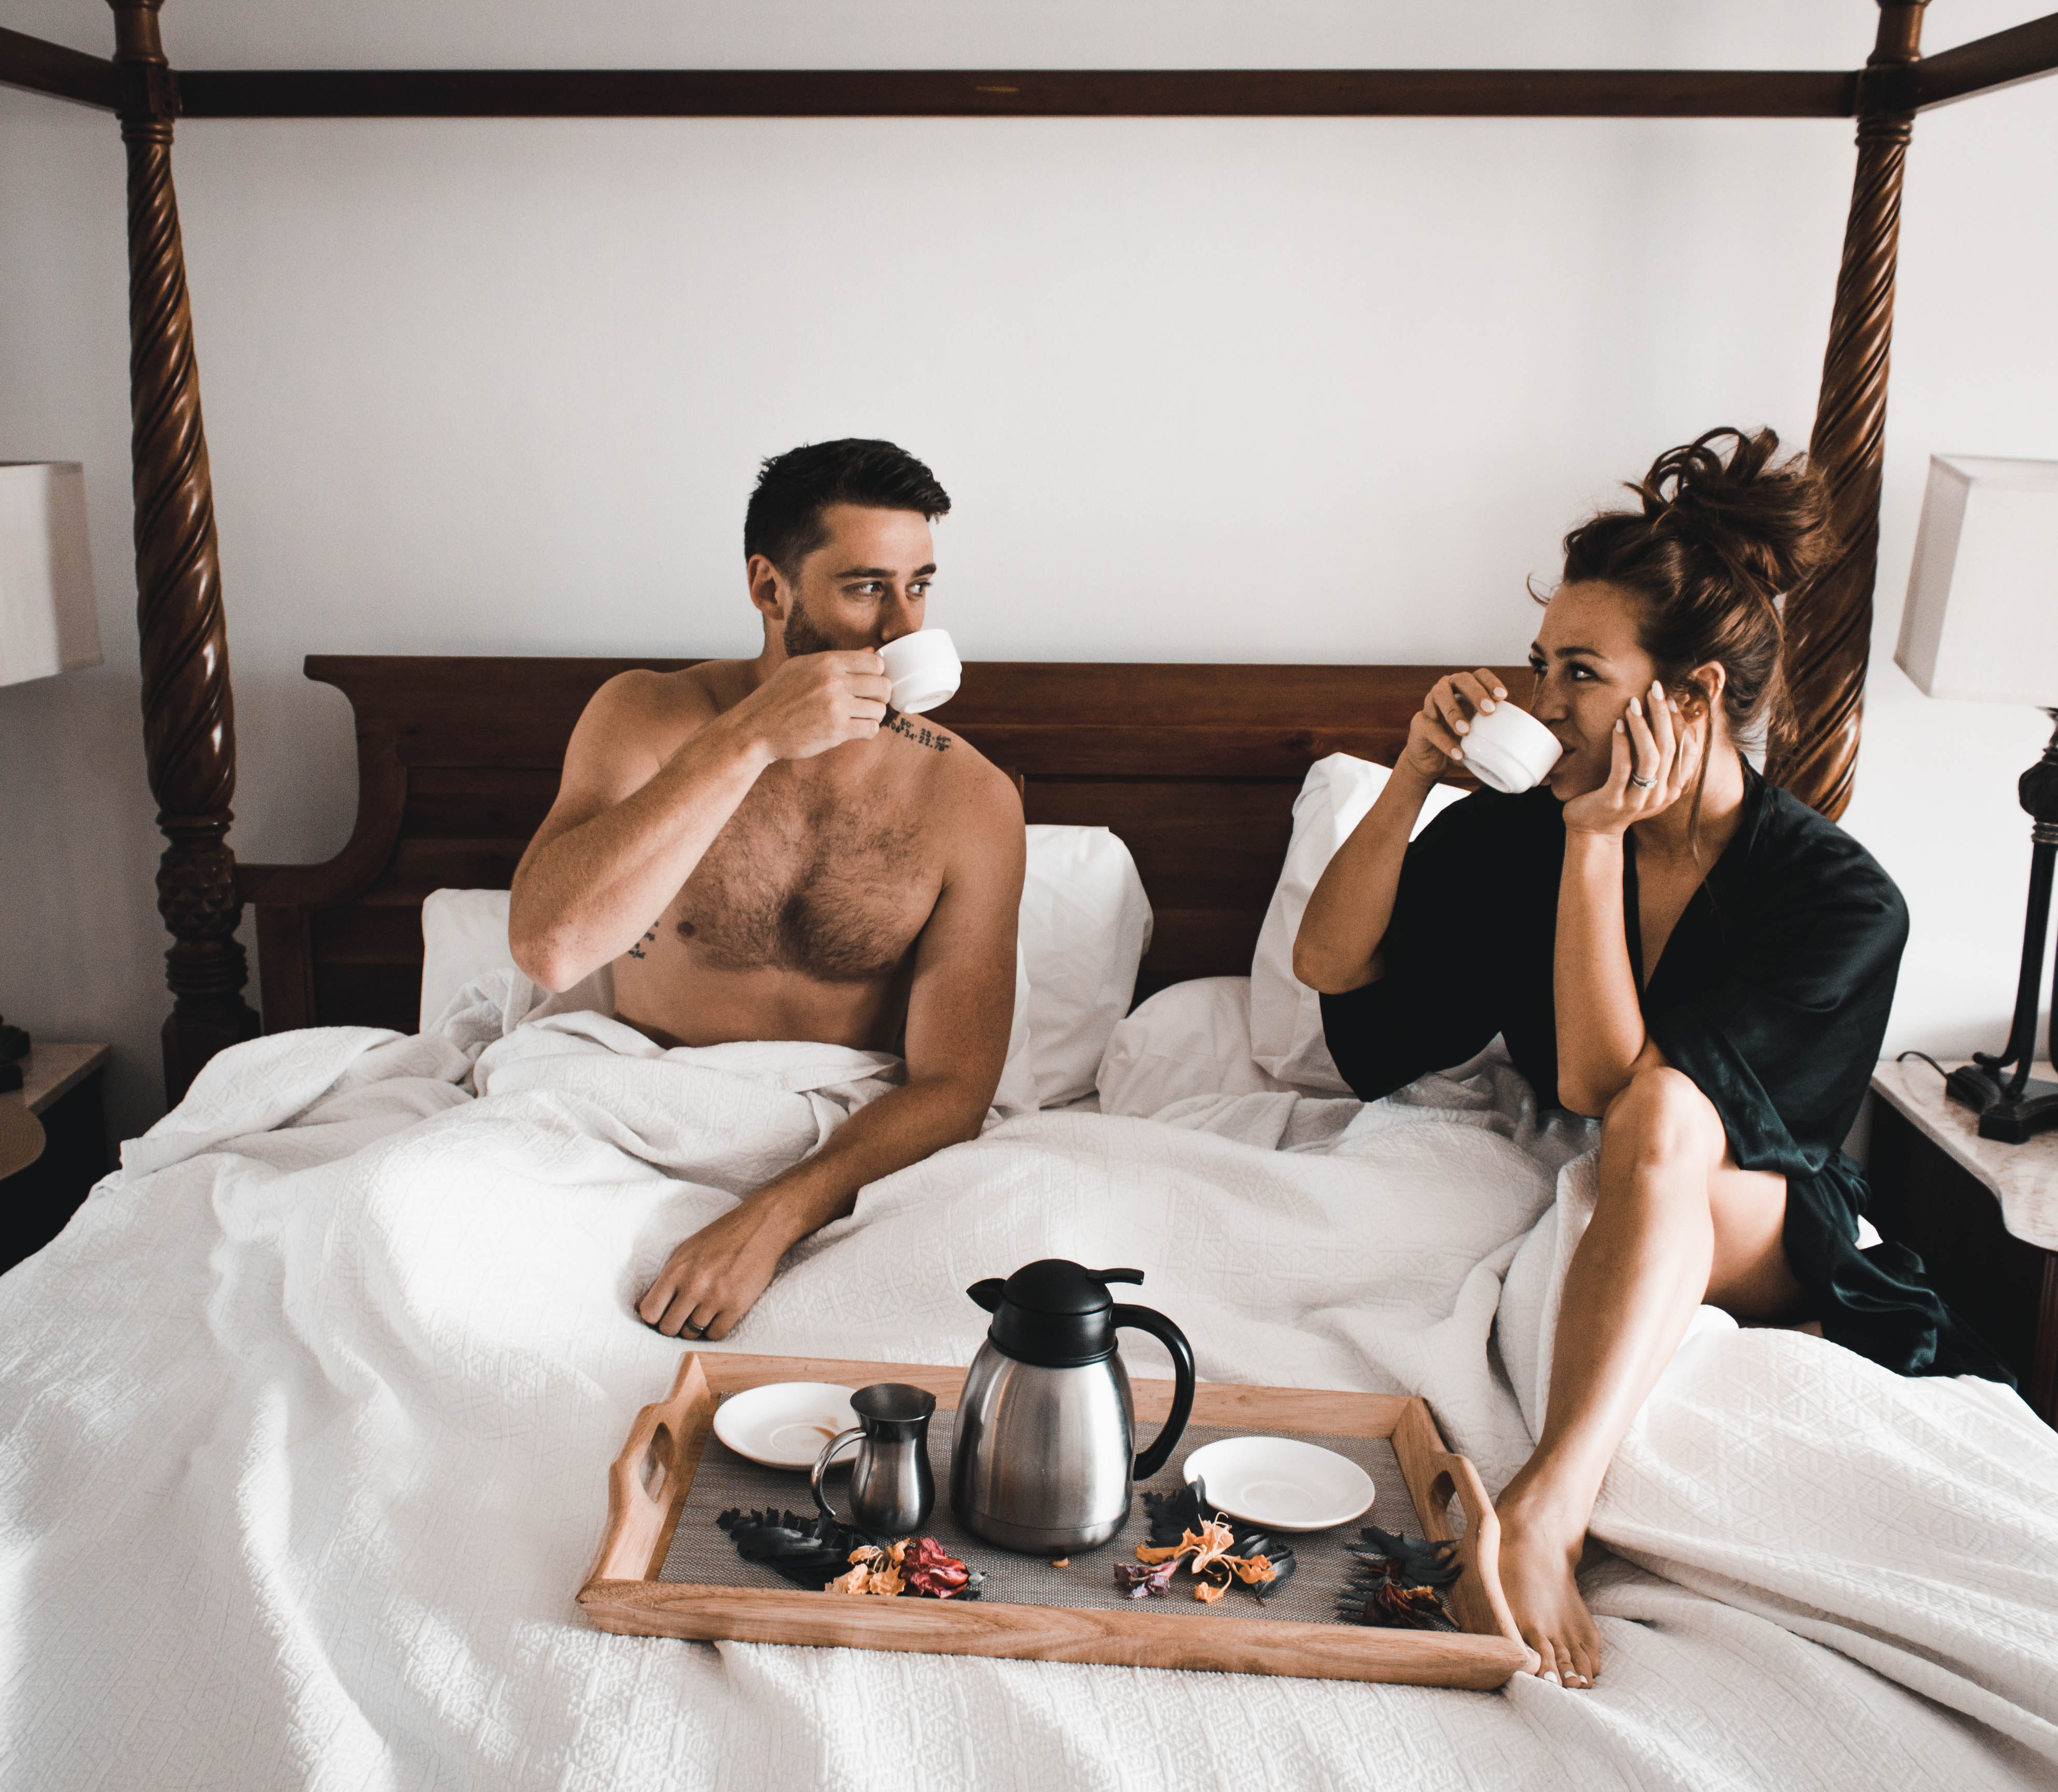 How much intimacy do you expect on your honeymoon